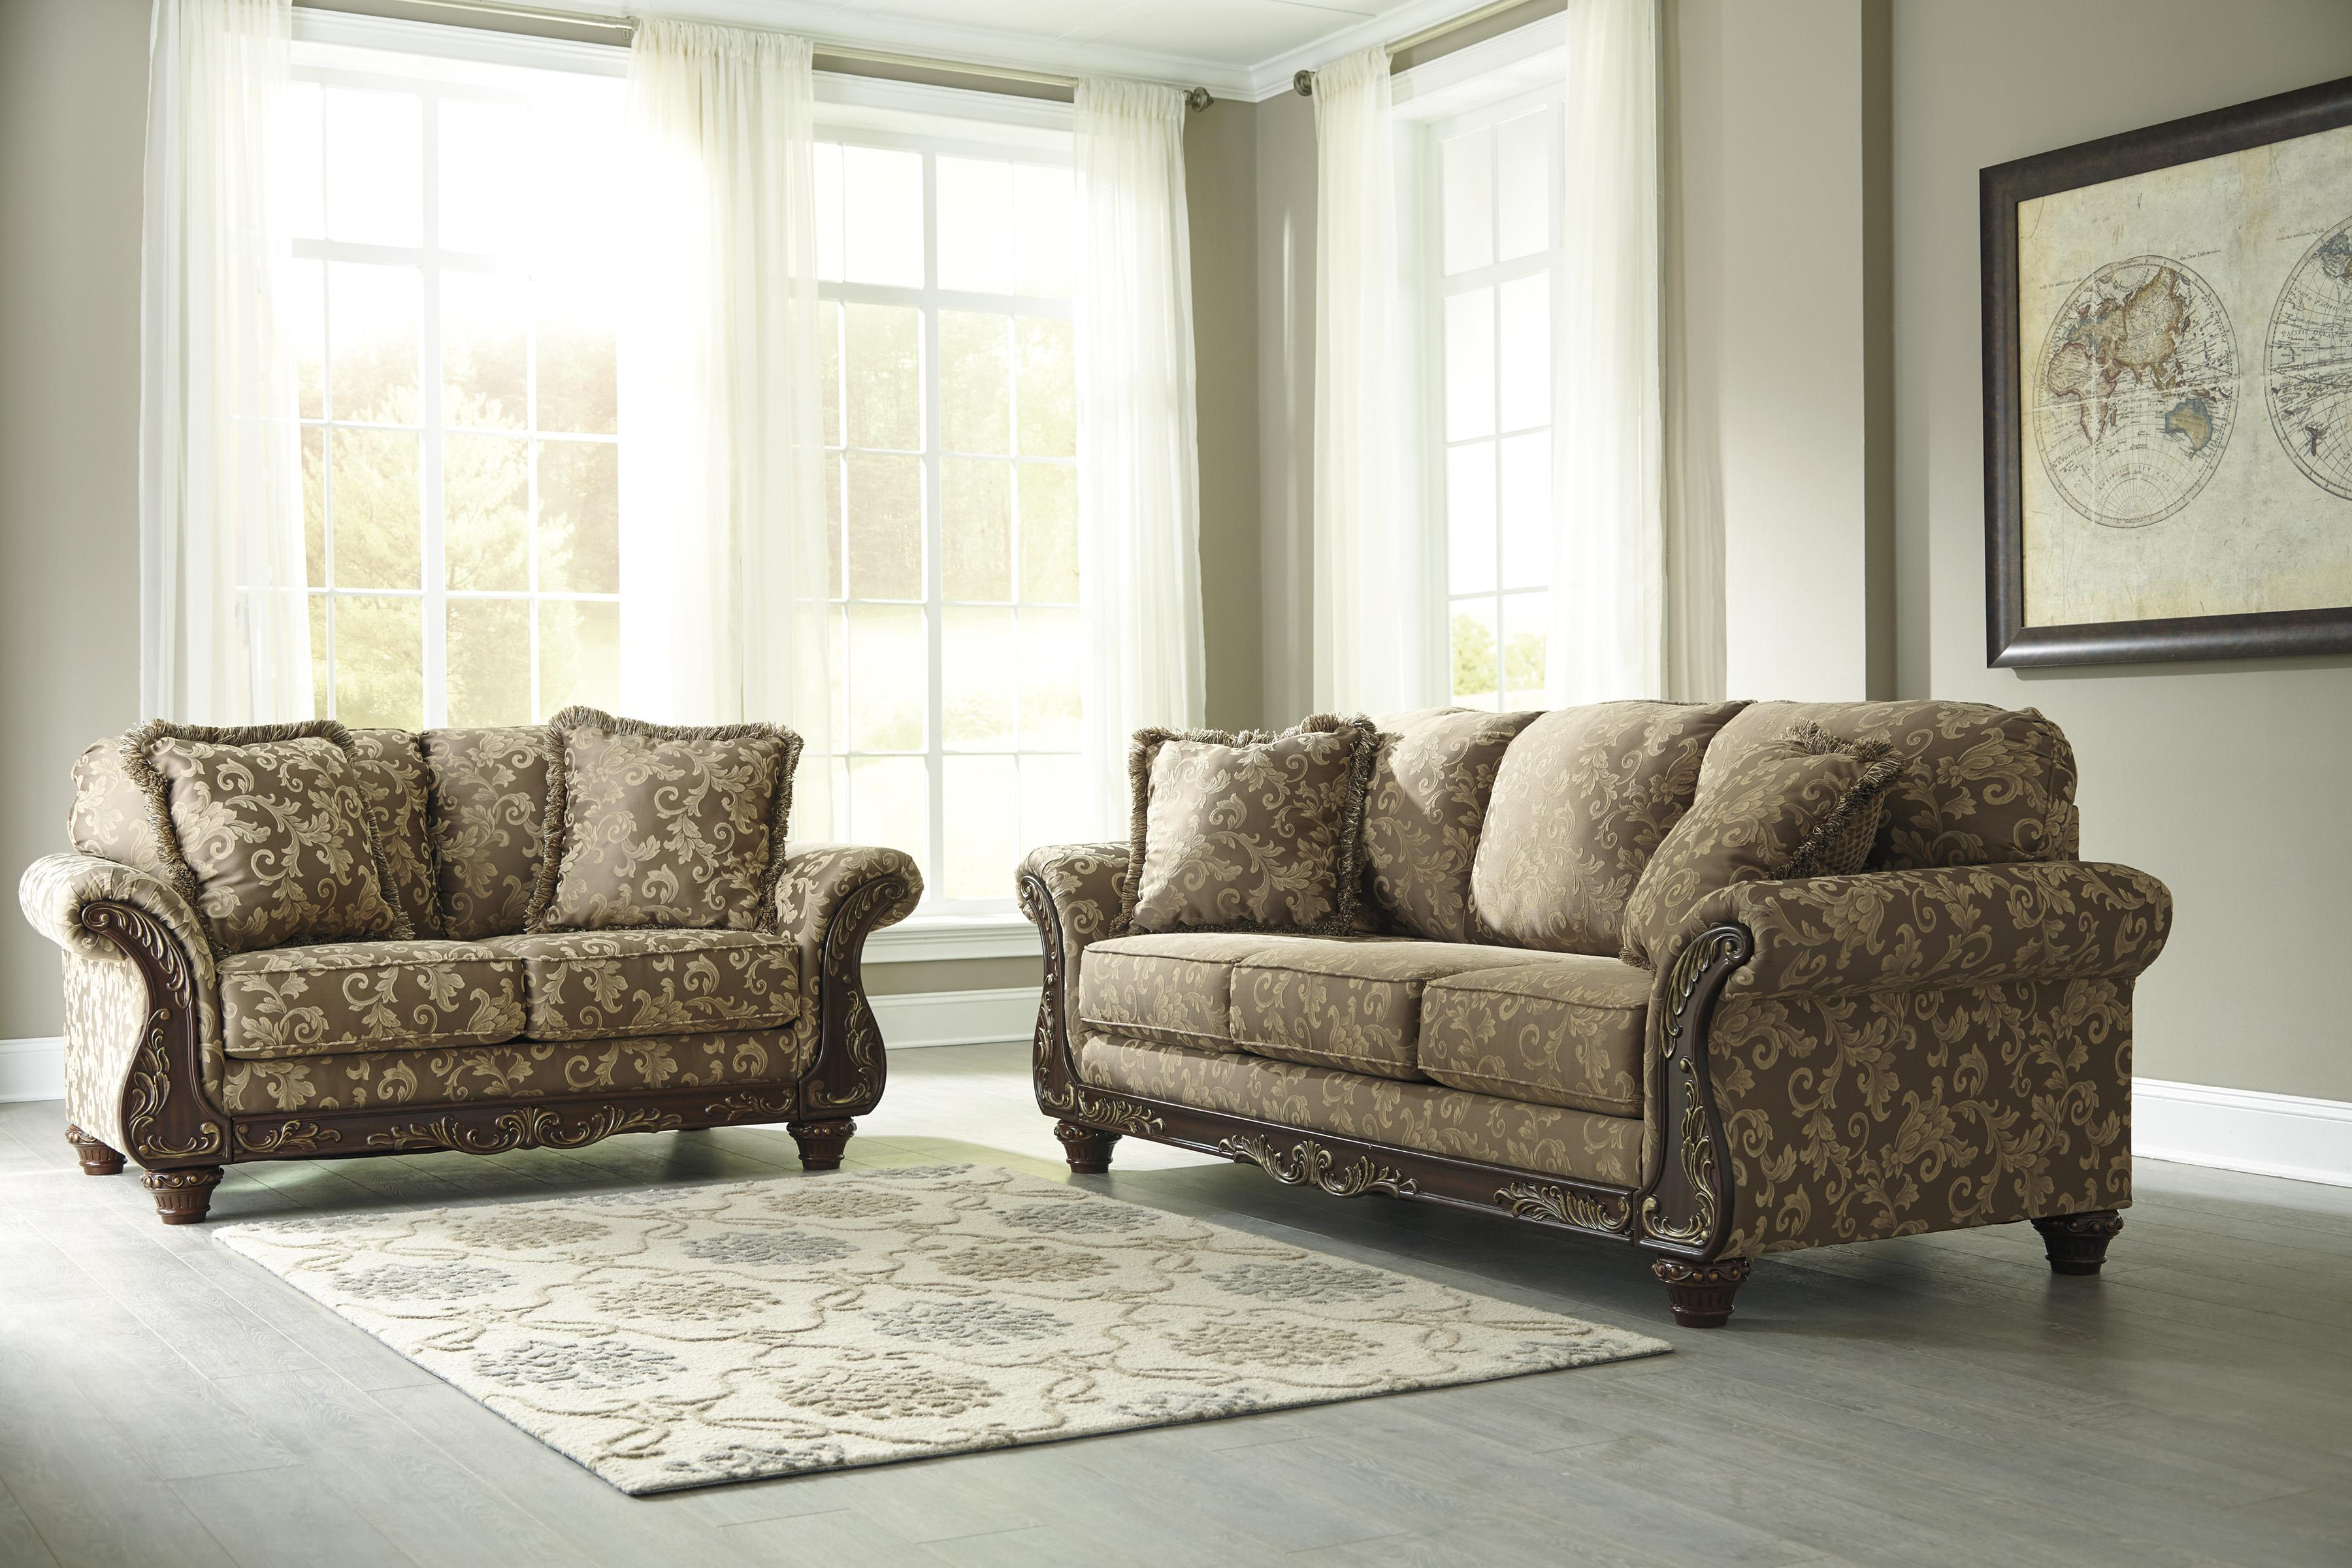 Signature Design by Ashley Irwindale Stationary Living Room Group - Item Number: 88404 Living Room Group 1